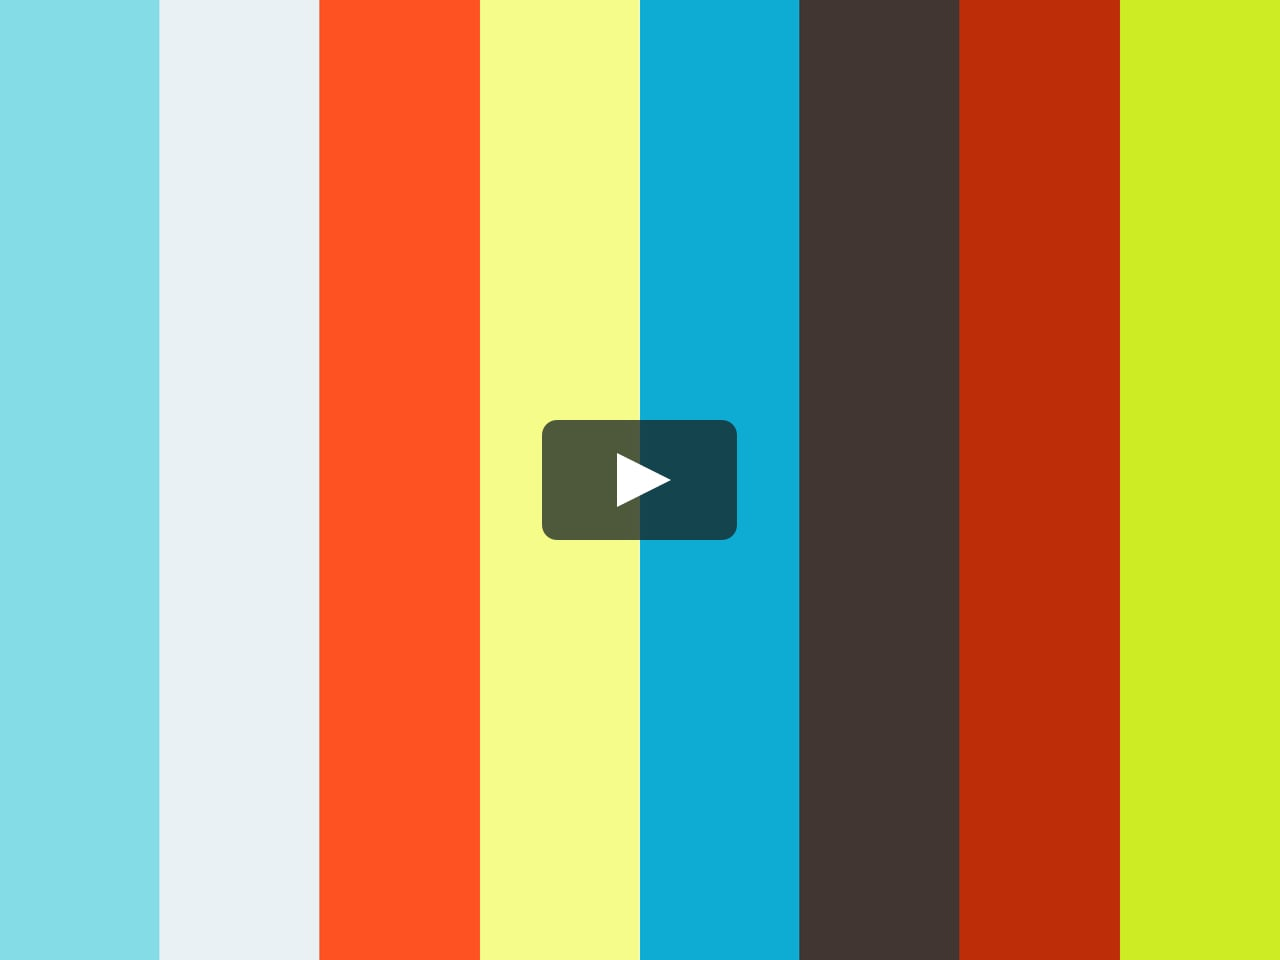 Install An Airdog Ii 165 Fuel Pump For A Duramax Lml On Vimeo Filters